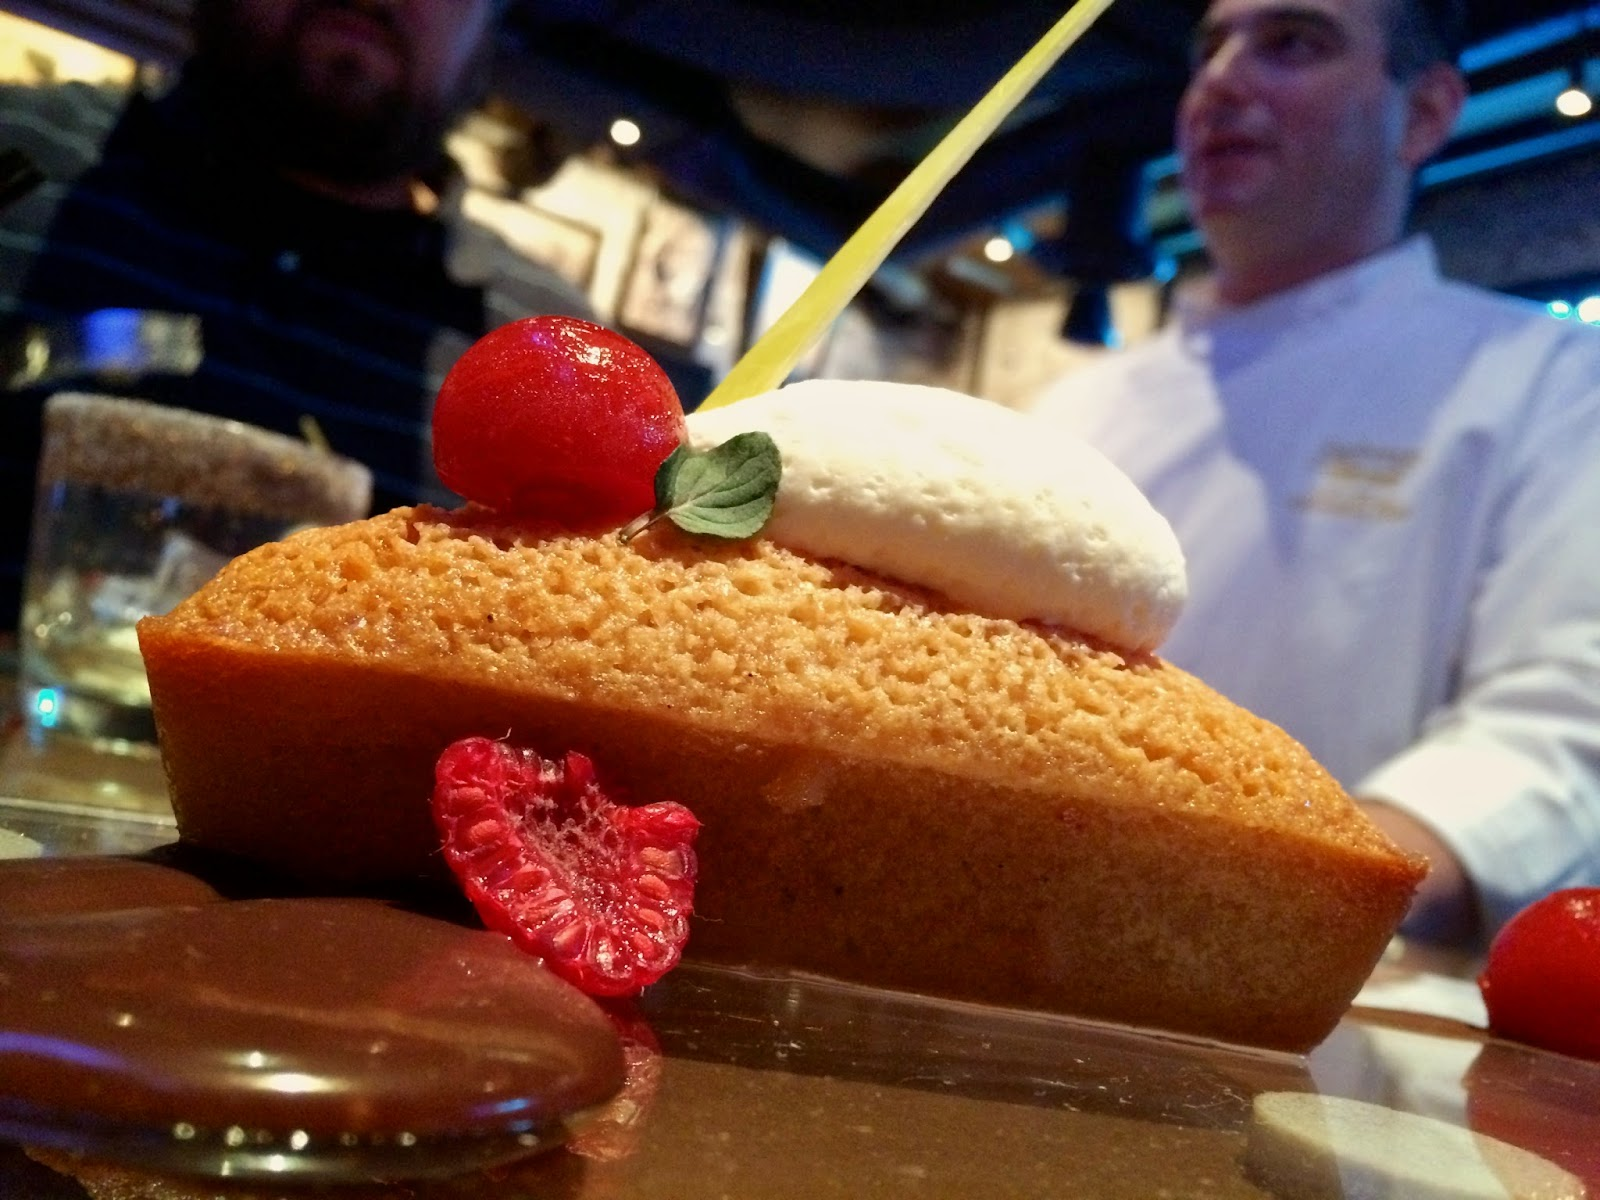 Jameson and Bee Sting Honey Almond Cake,  Strawberry Jelly Spheres and Chocolate Ganache